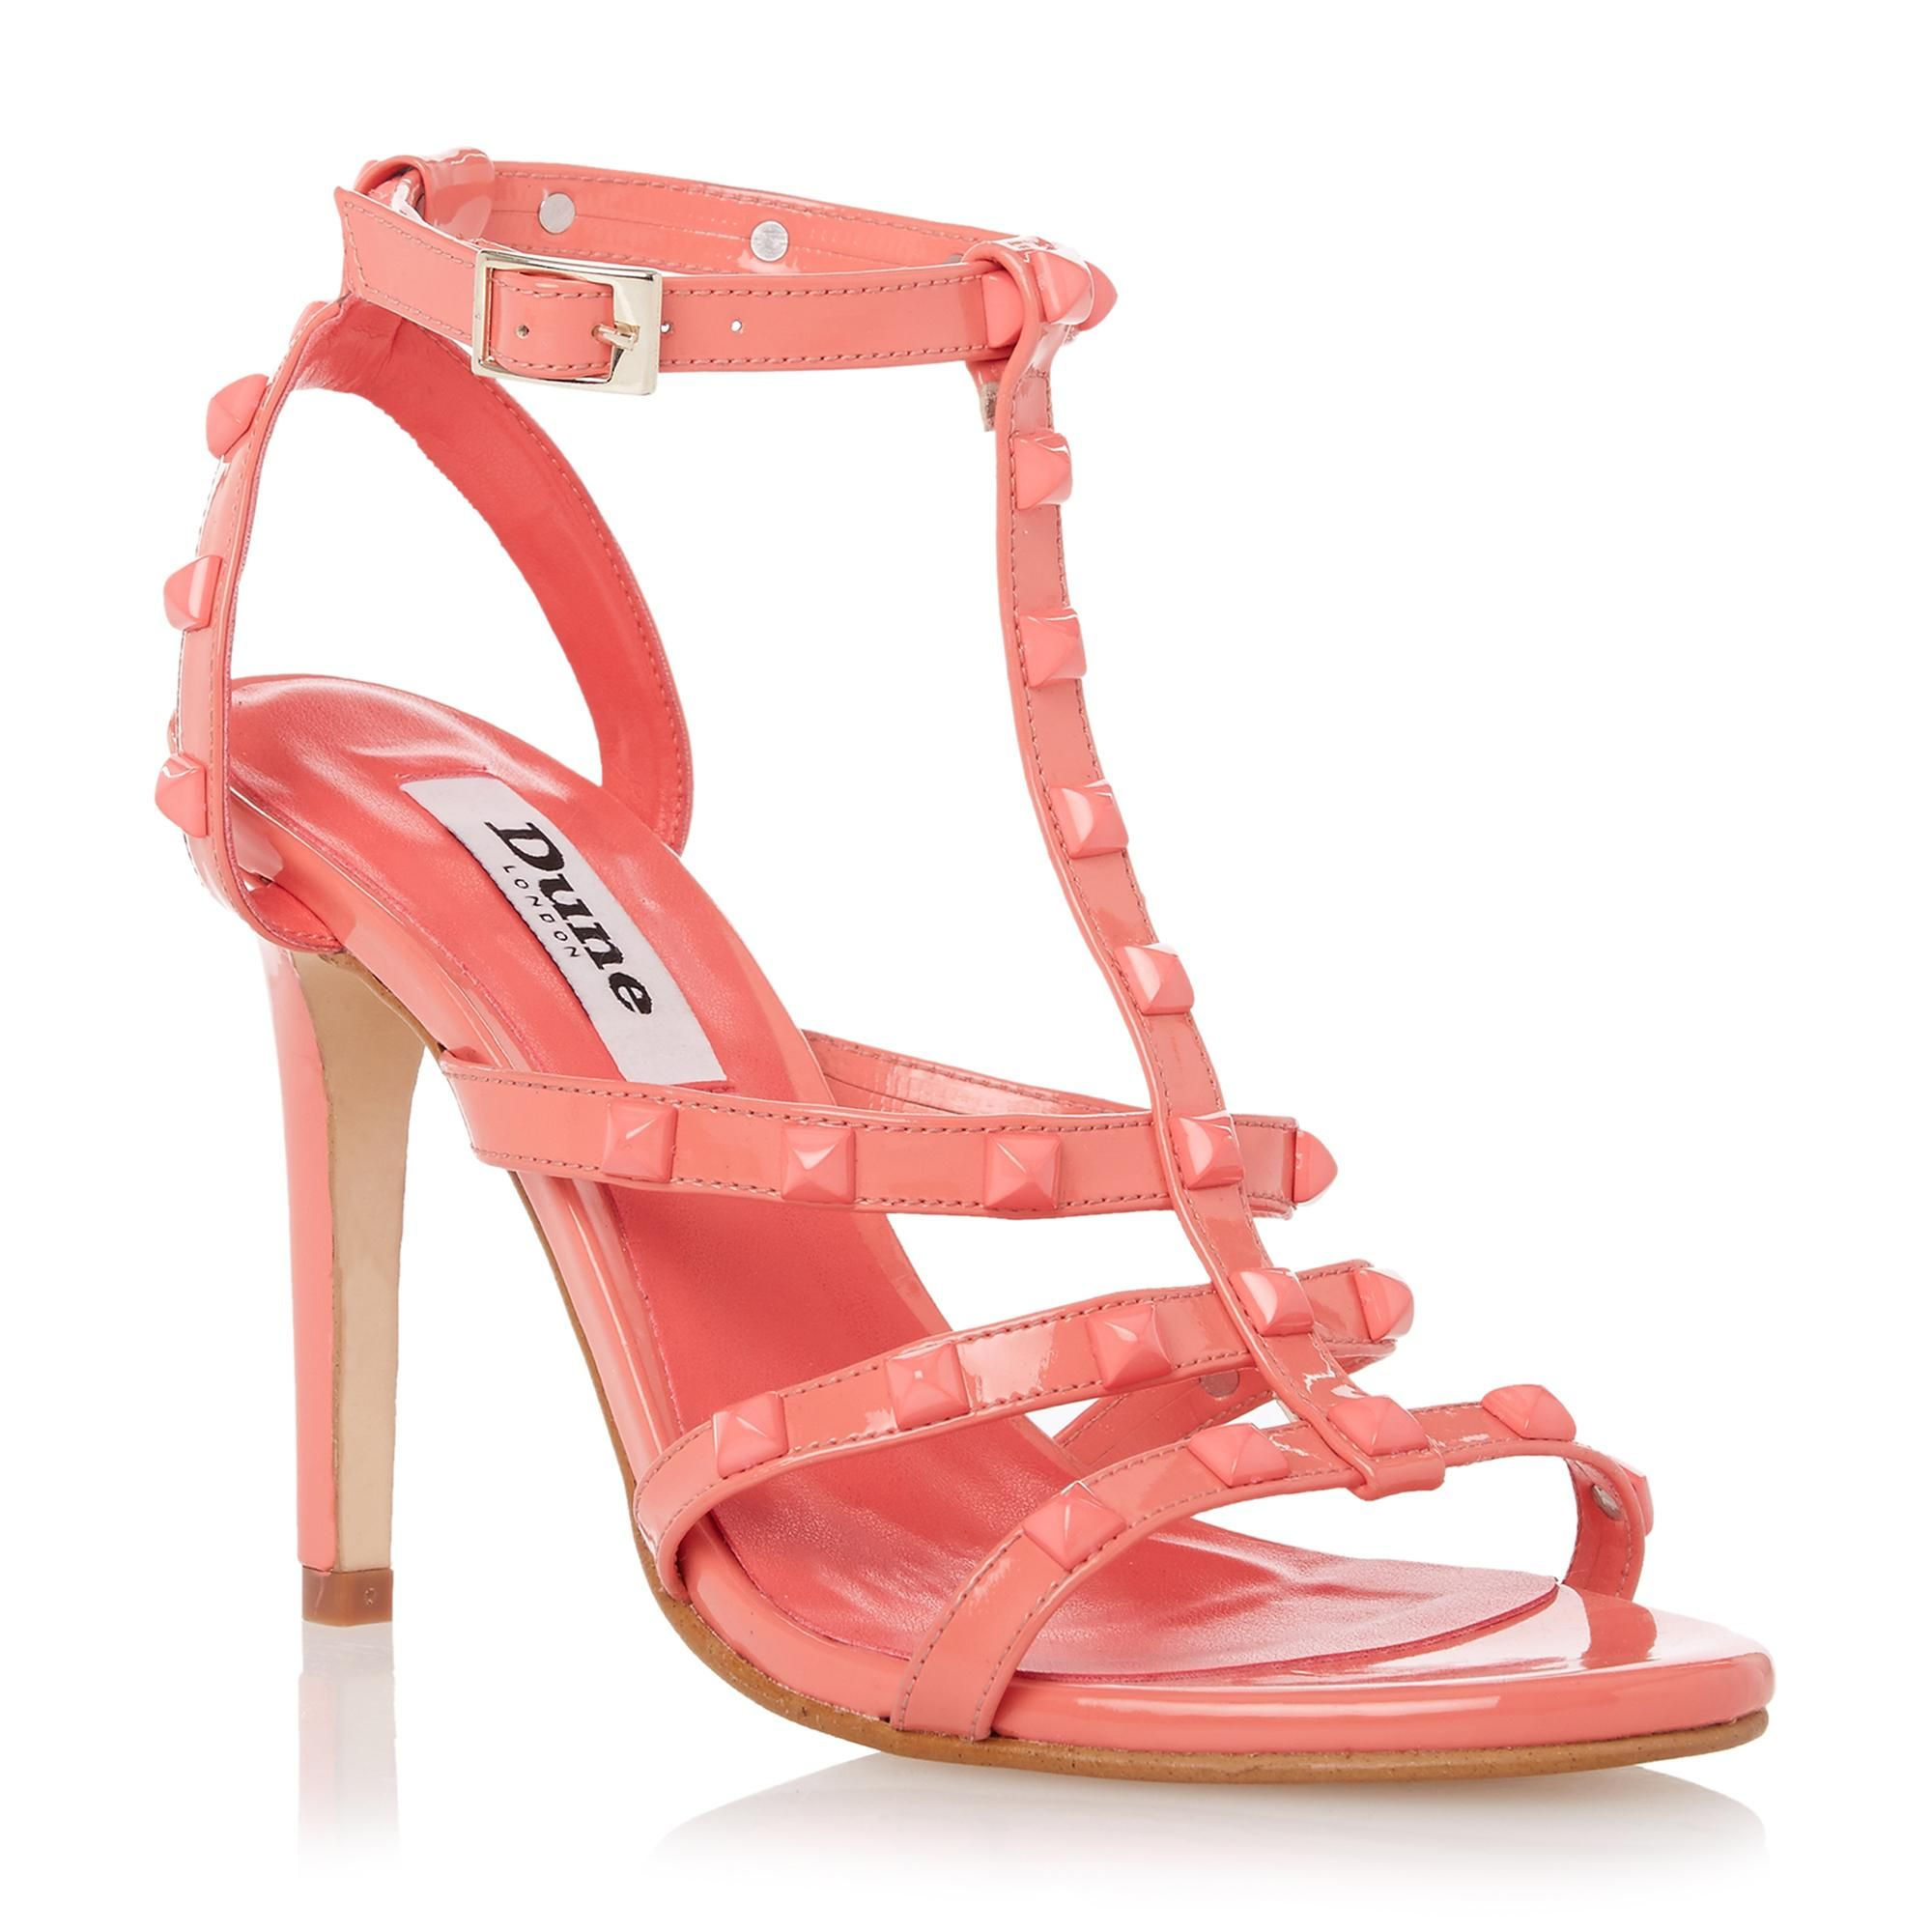 9cd398bde51 DUNE LADIES MELANY - Studded Strappy High Heel Sandal - coral